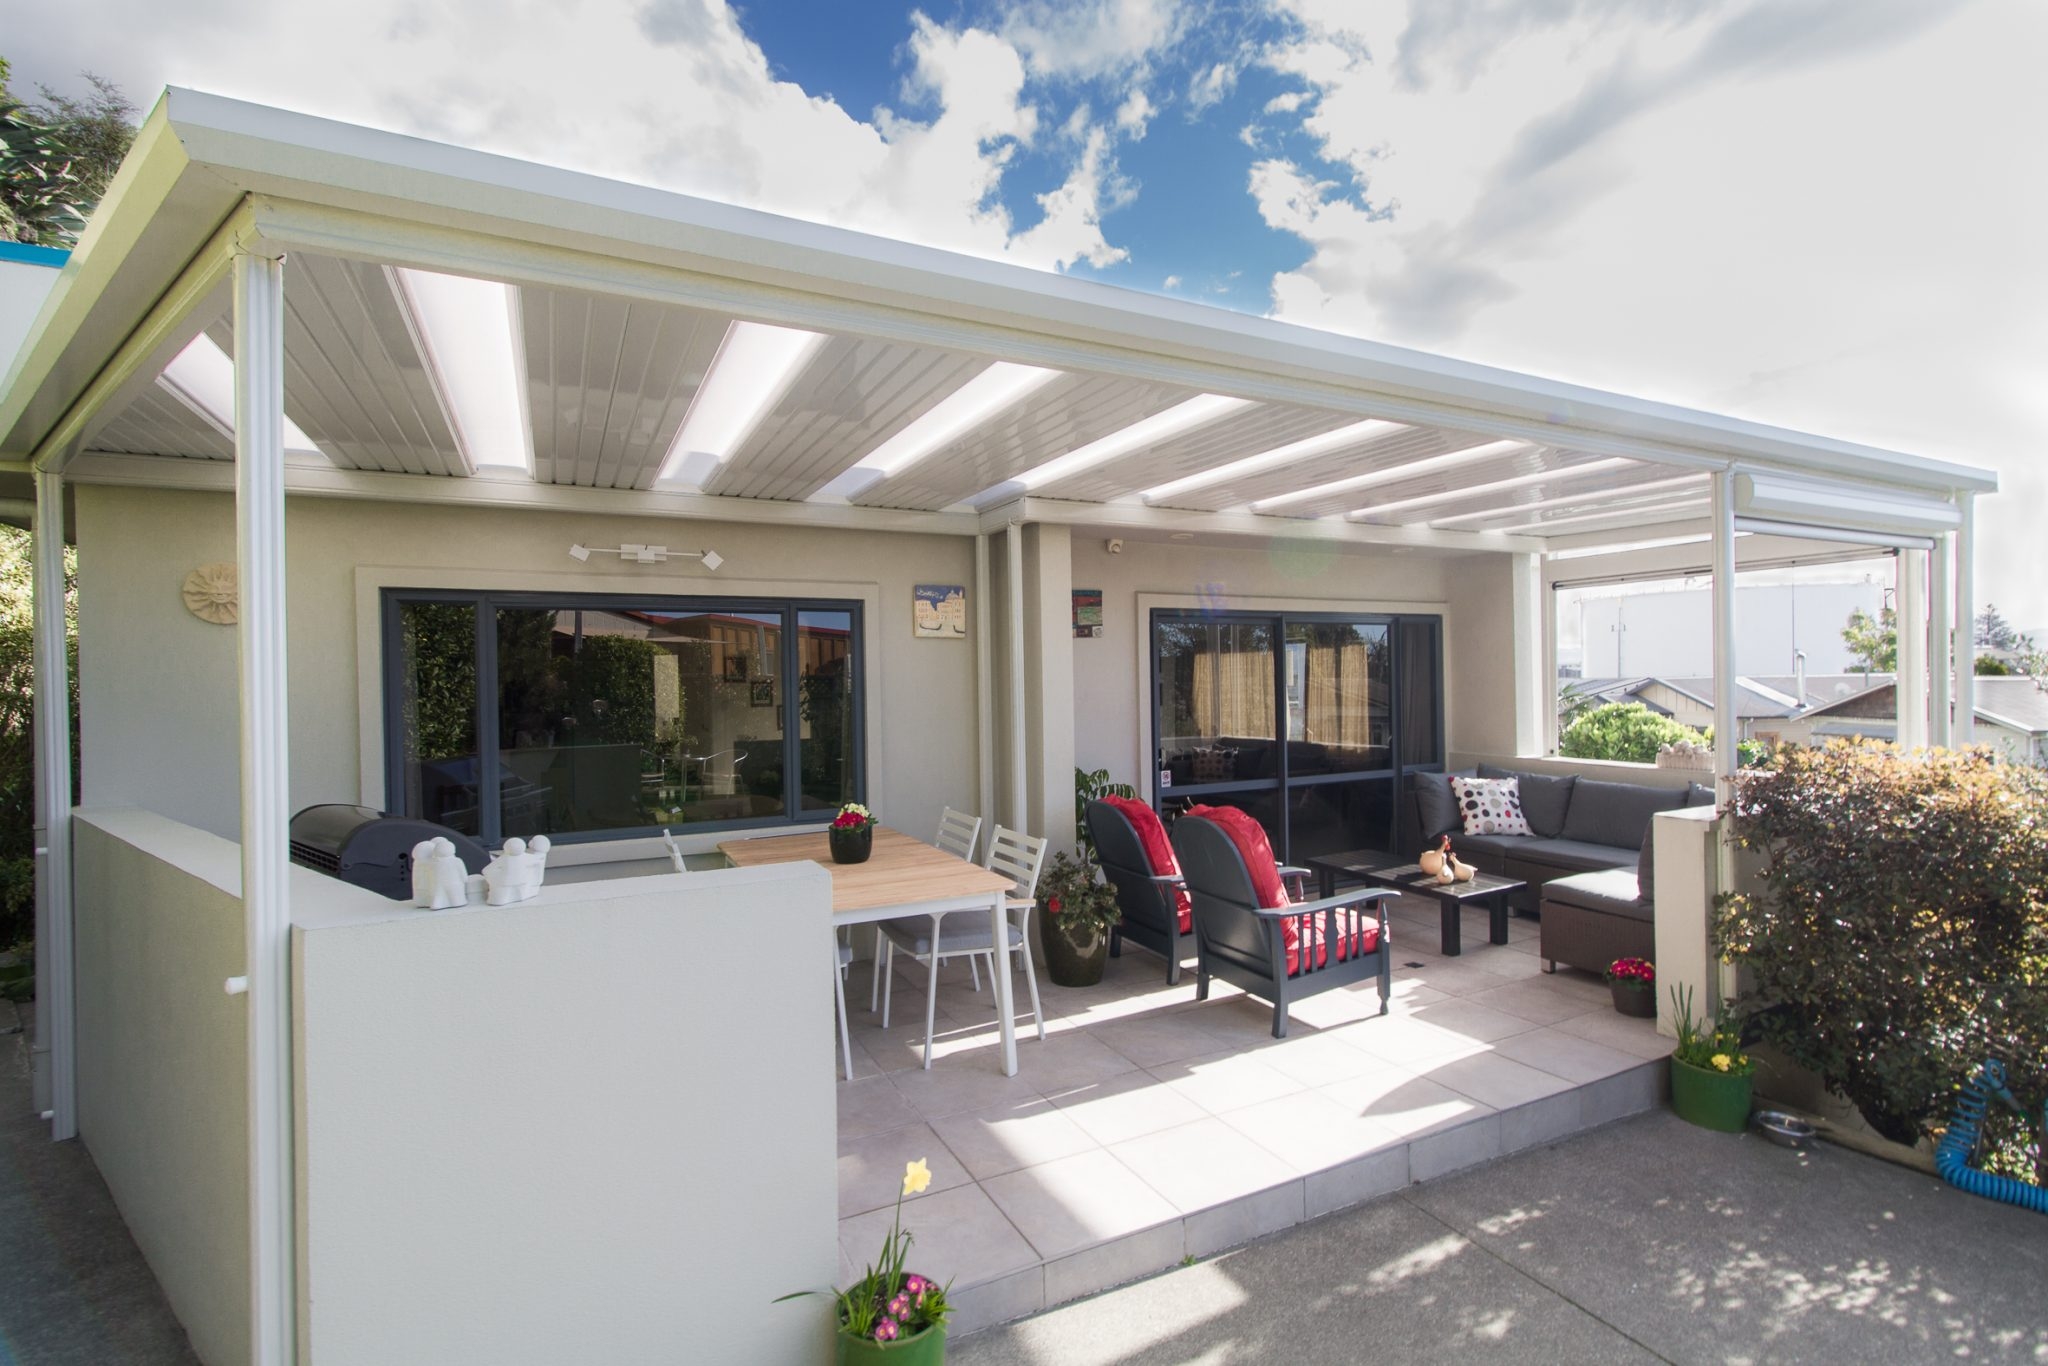 outdoor area sheltered by a pergola roof in napier